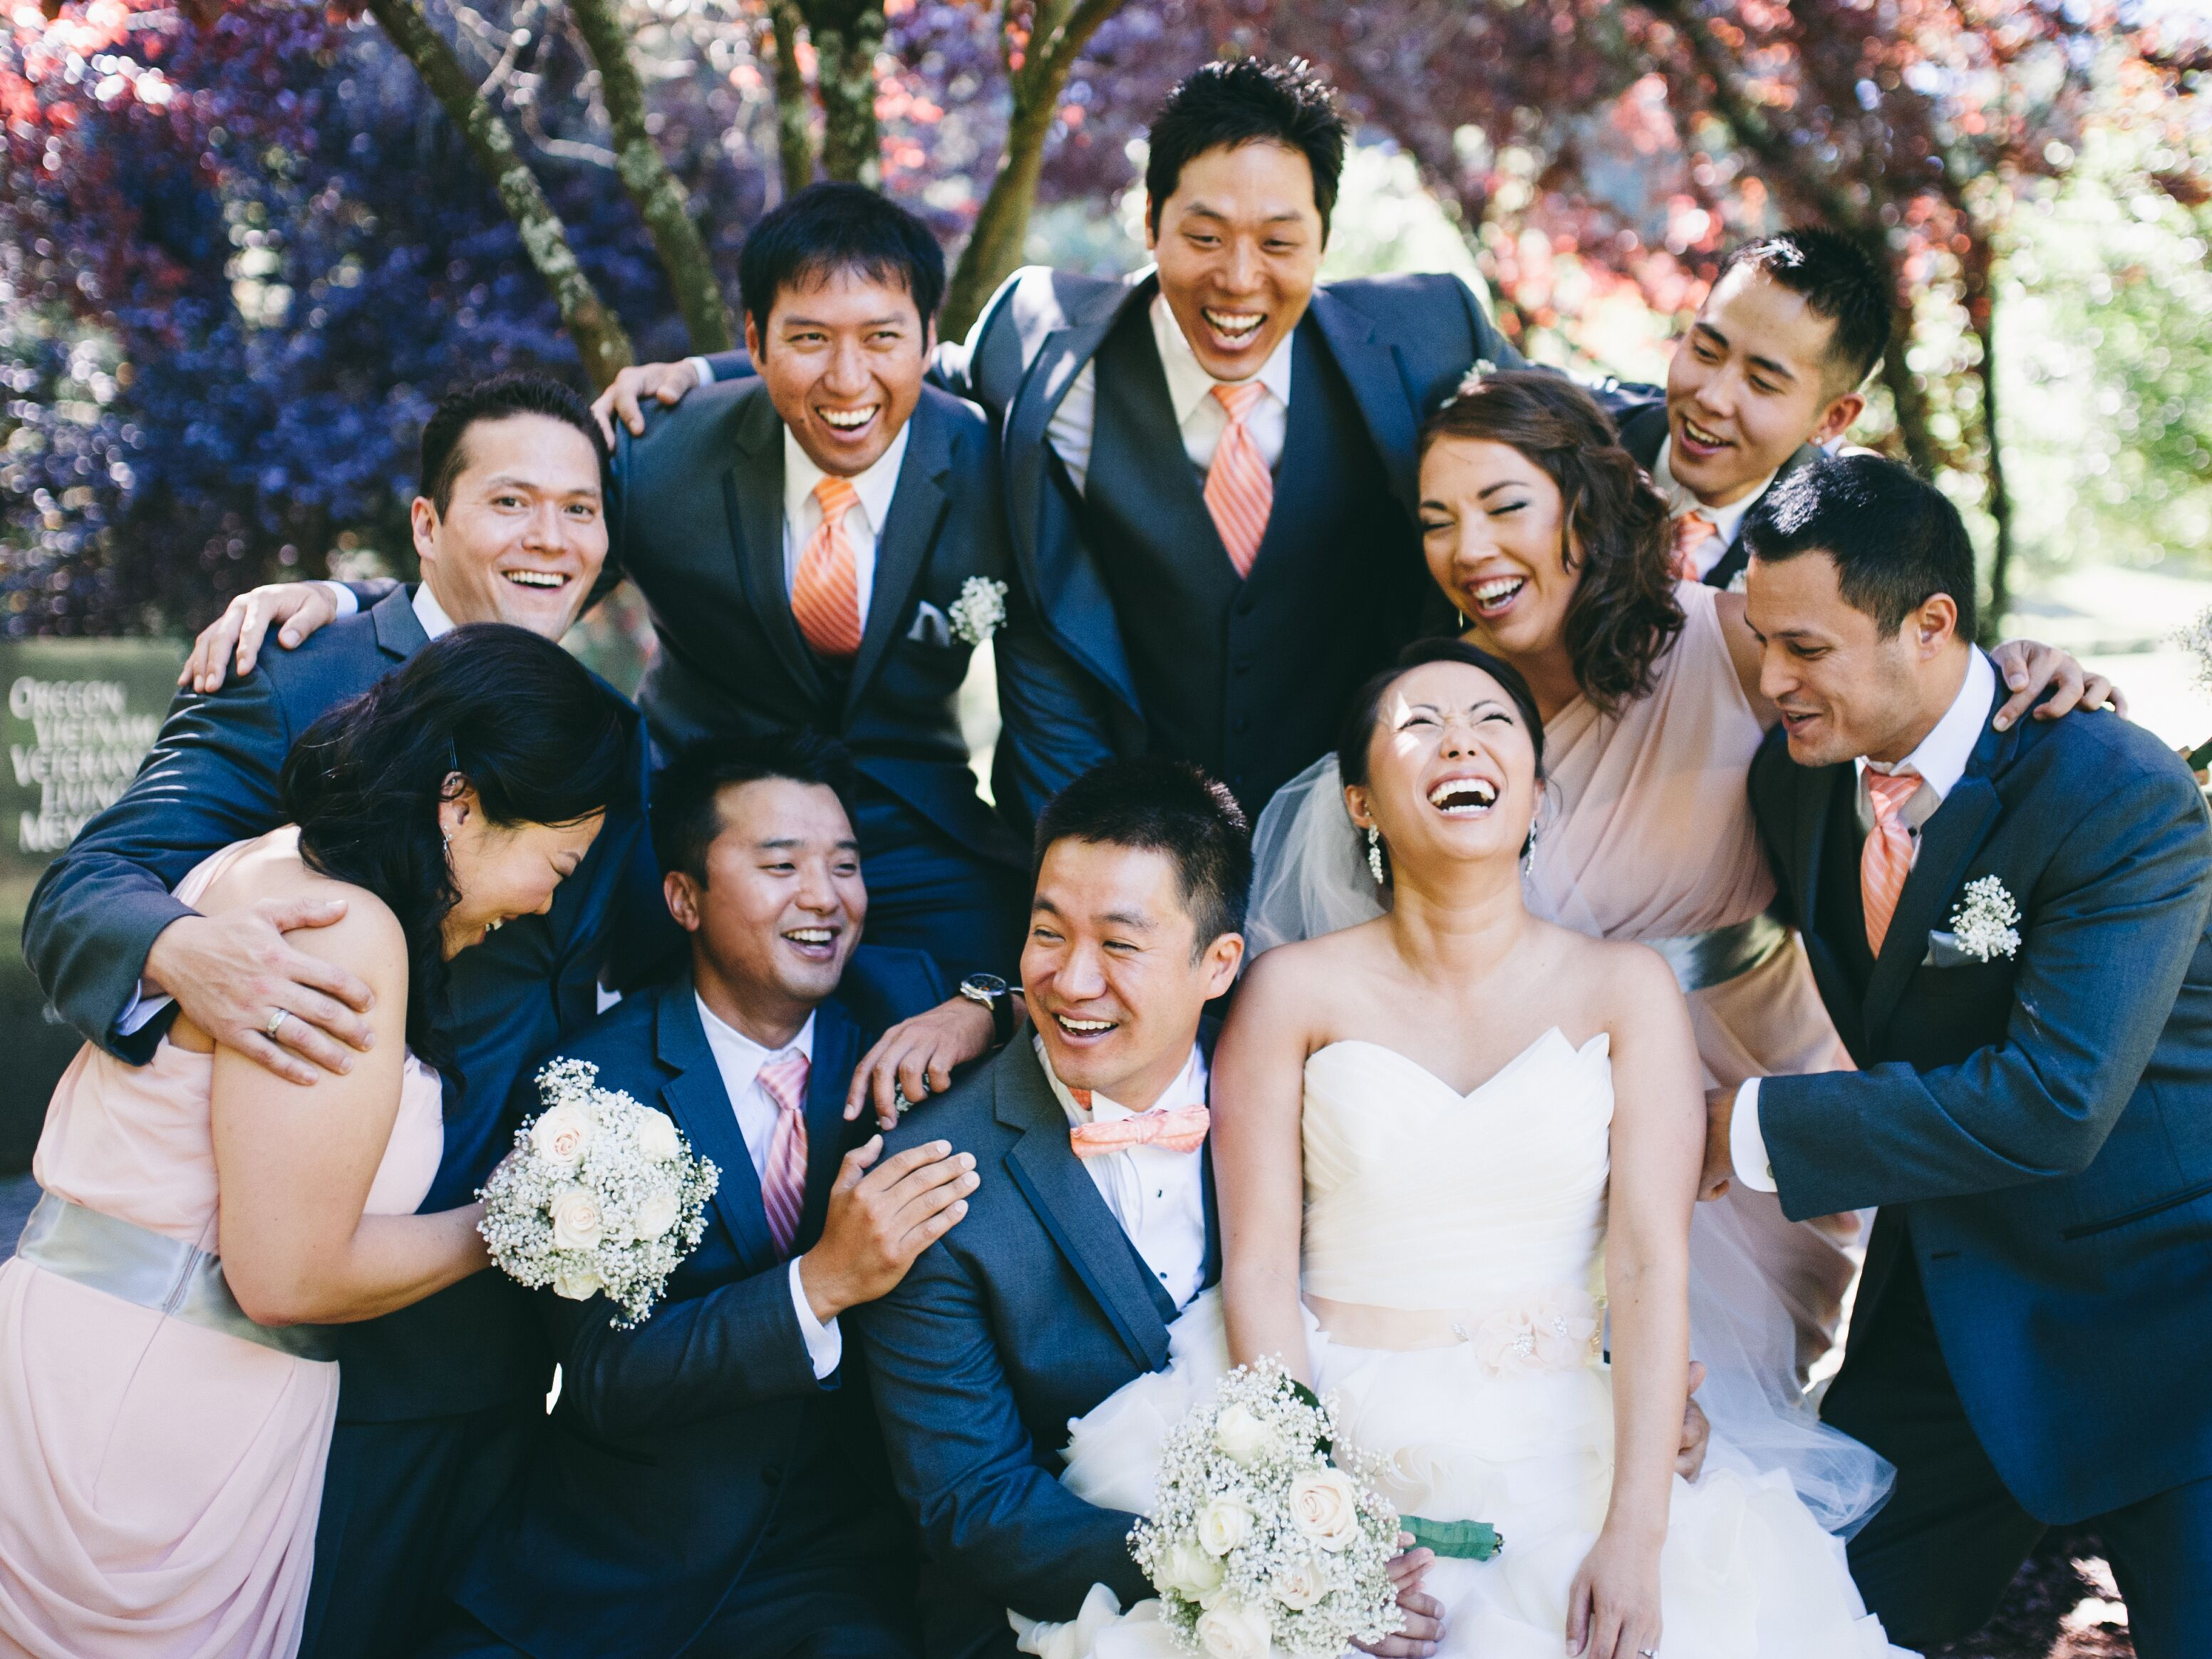 Is It Okay To Have An Uneven Wedding Party